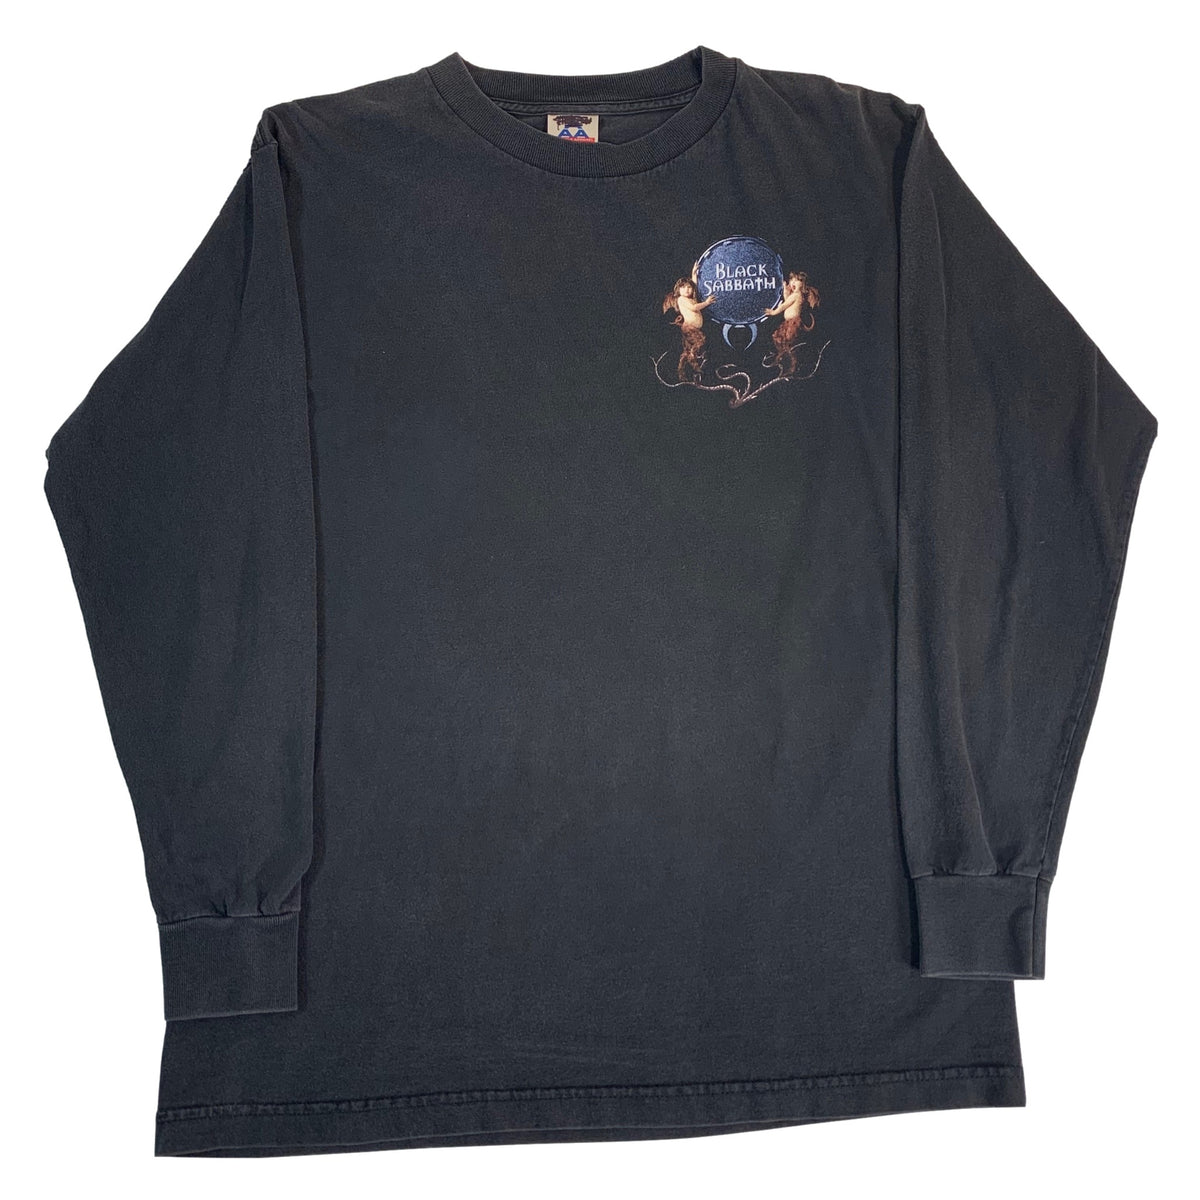 "Vintage Black Sabbath ""Crew"" Long Sleeve Shirt"